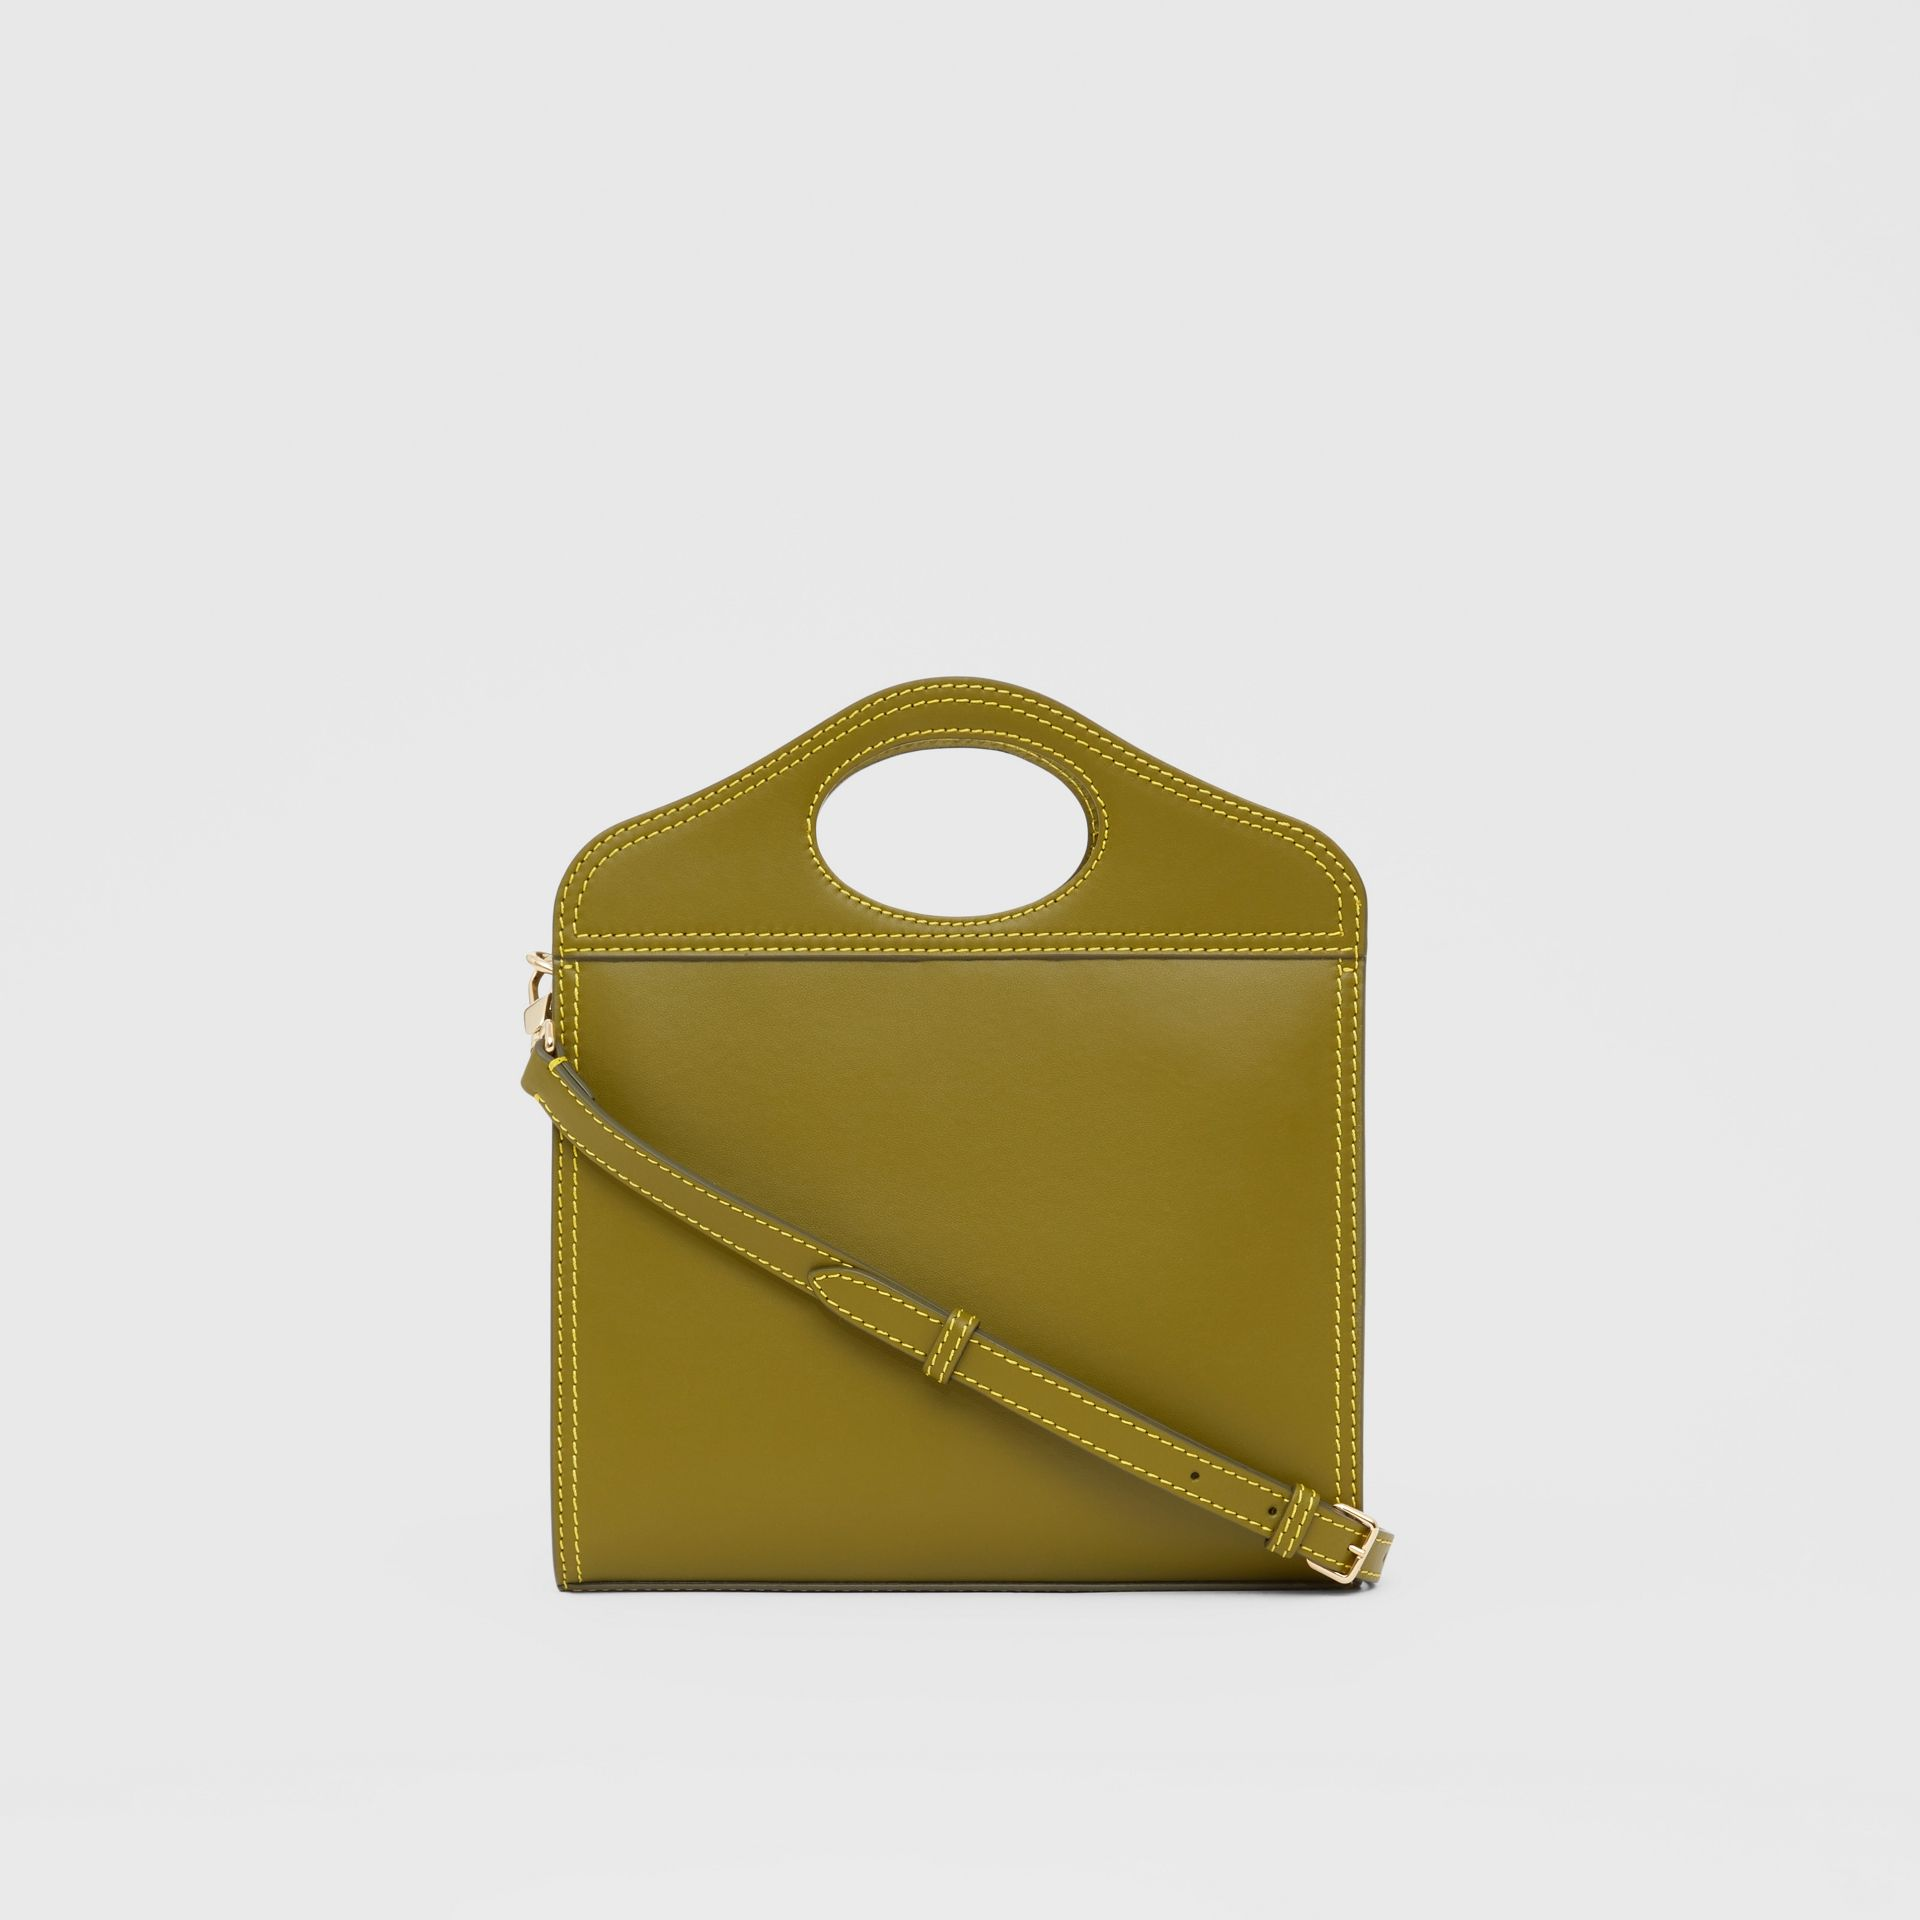 Mini sac Pocket en cuir surpiqué (Vert Genévrier) - Femme | Burberry Canada - photo de la galerie 7